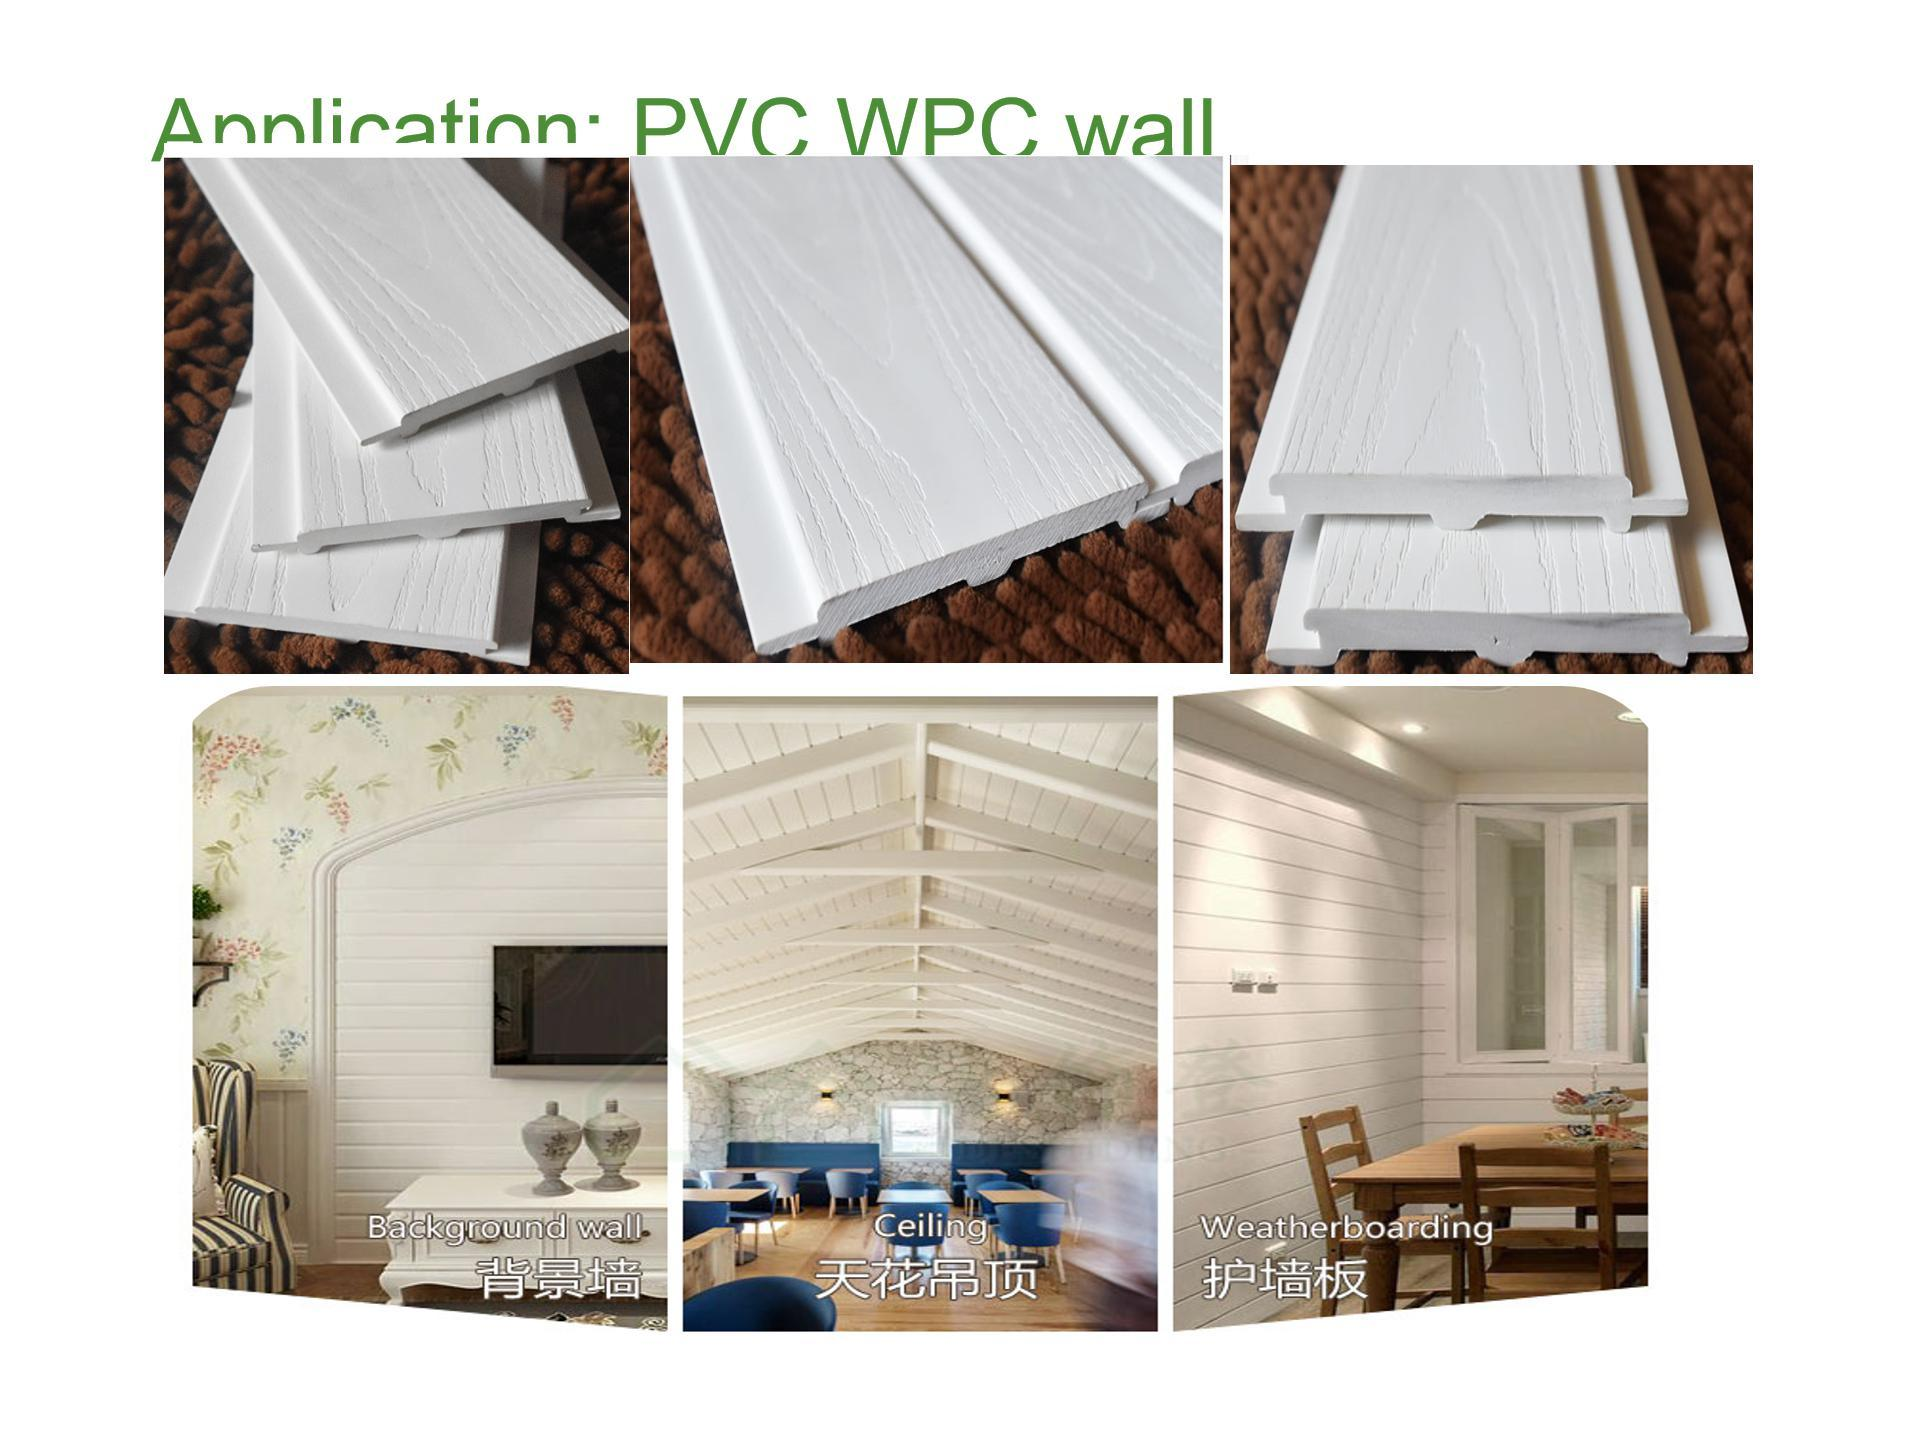 PVC WPC wall panel with 3D embossing